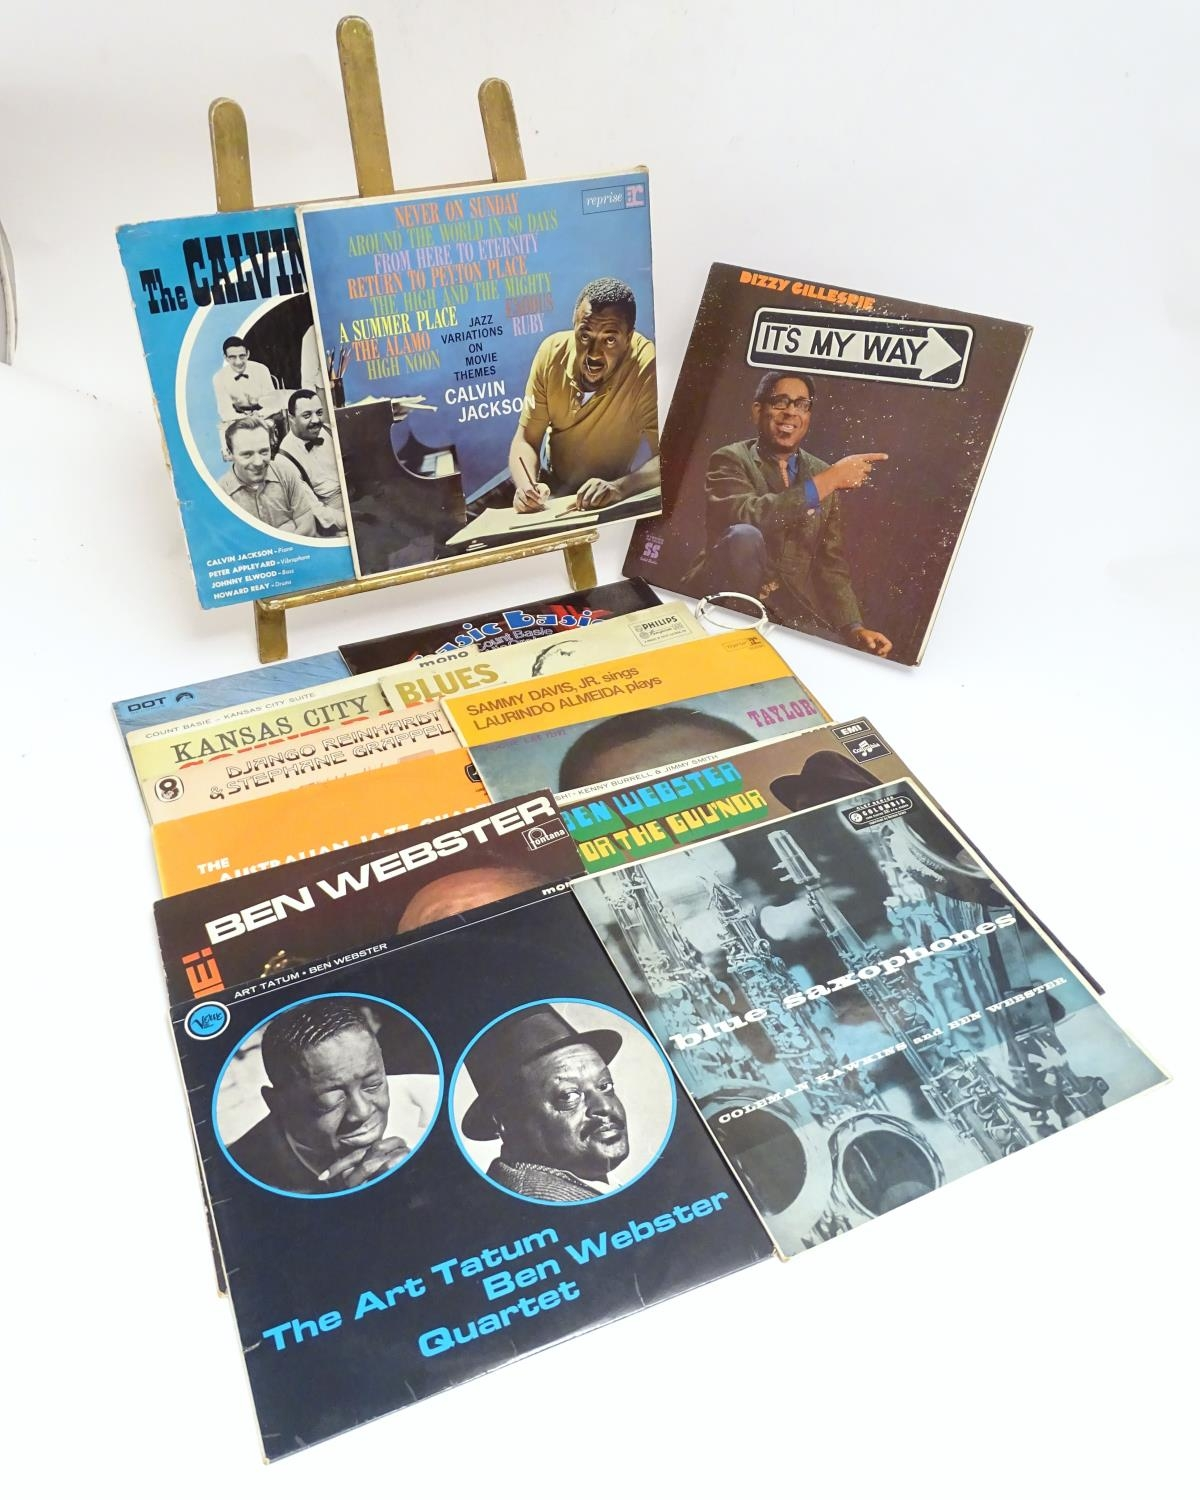 A collection of 20thC 33 rpm Vinyl records / LPs, - Jazz, comprising: The Eddie Condon Floor Show 2, - Image 3 of 19